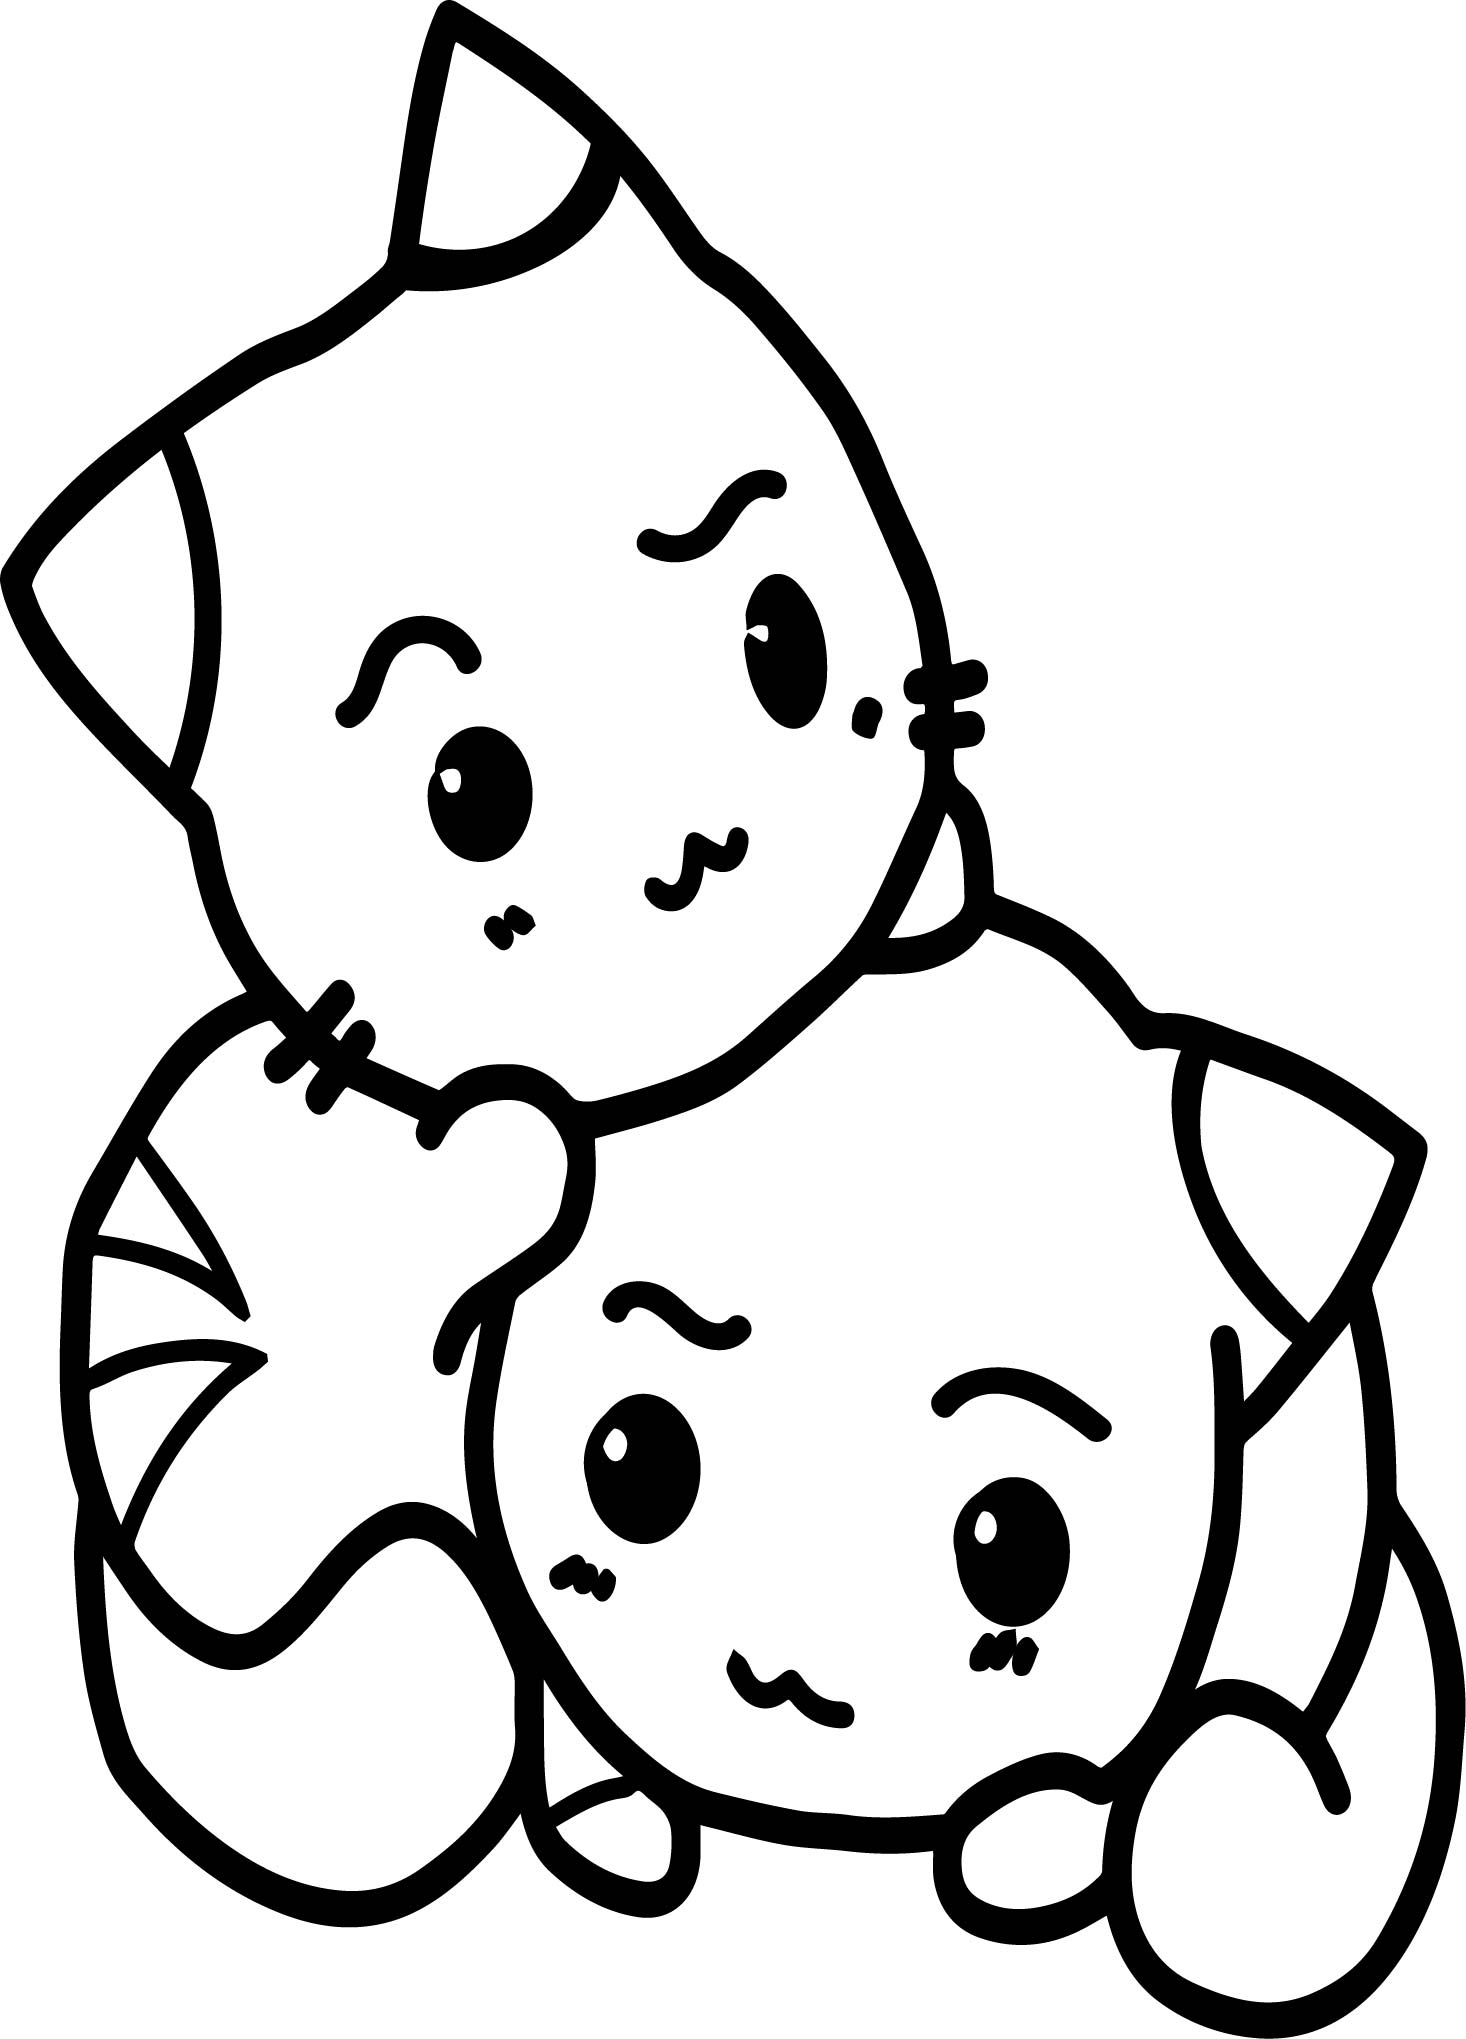 Anime kittens coloring pages ~ Two Cats In Love Anime Coloring Page | Wecoloringpage.com